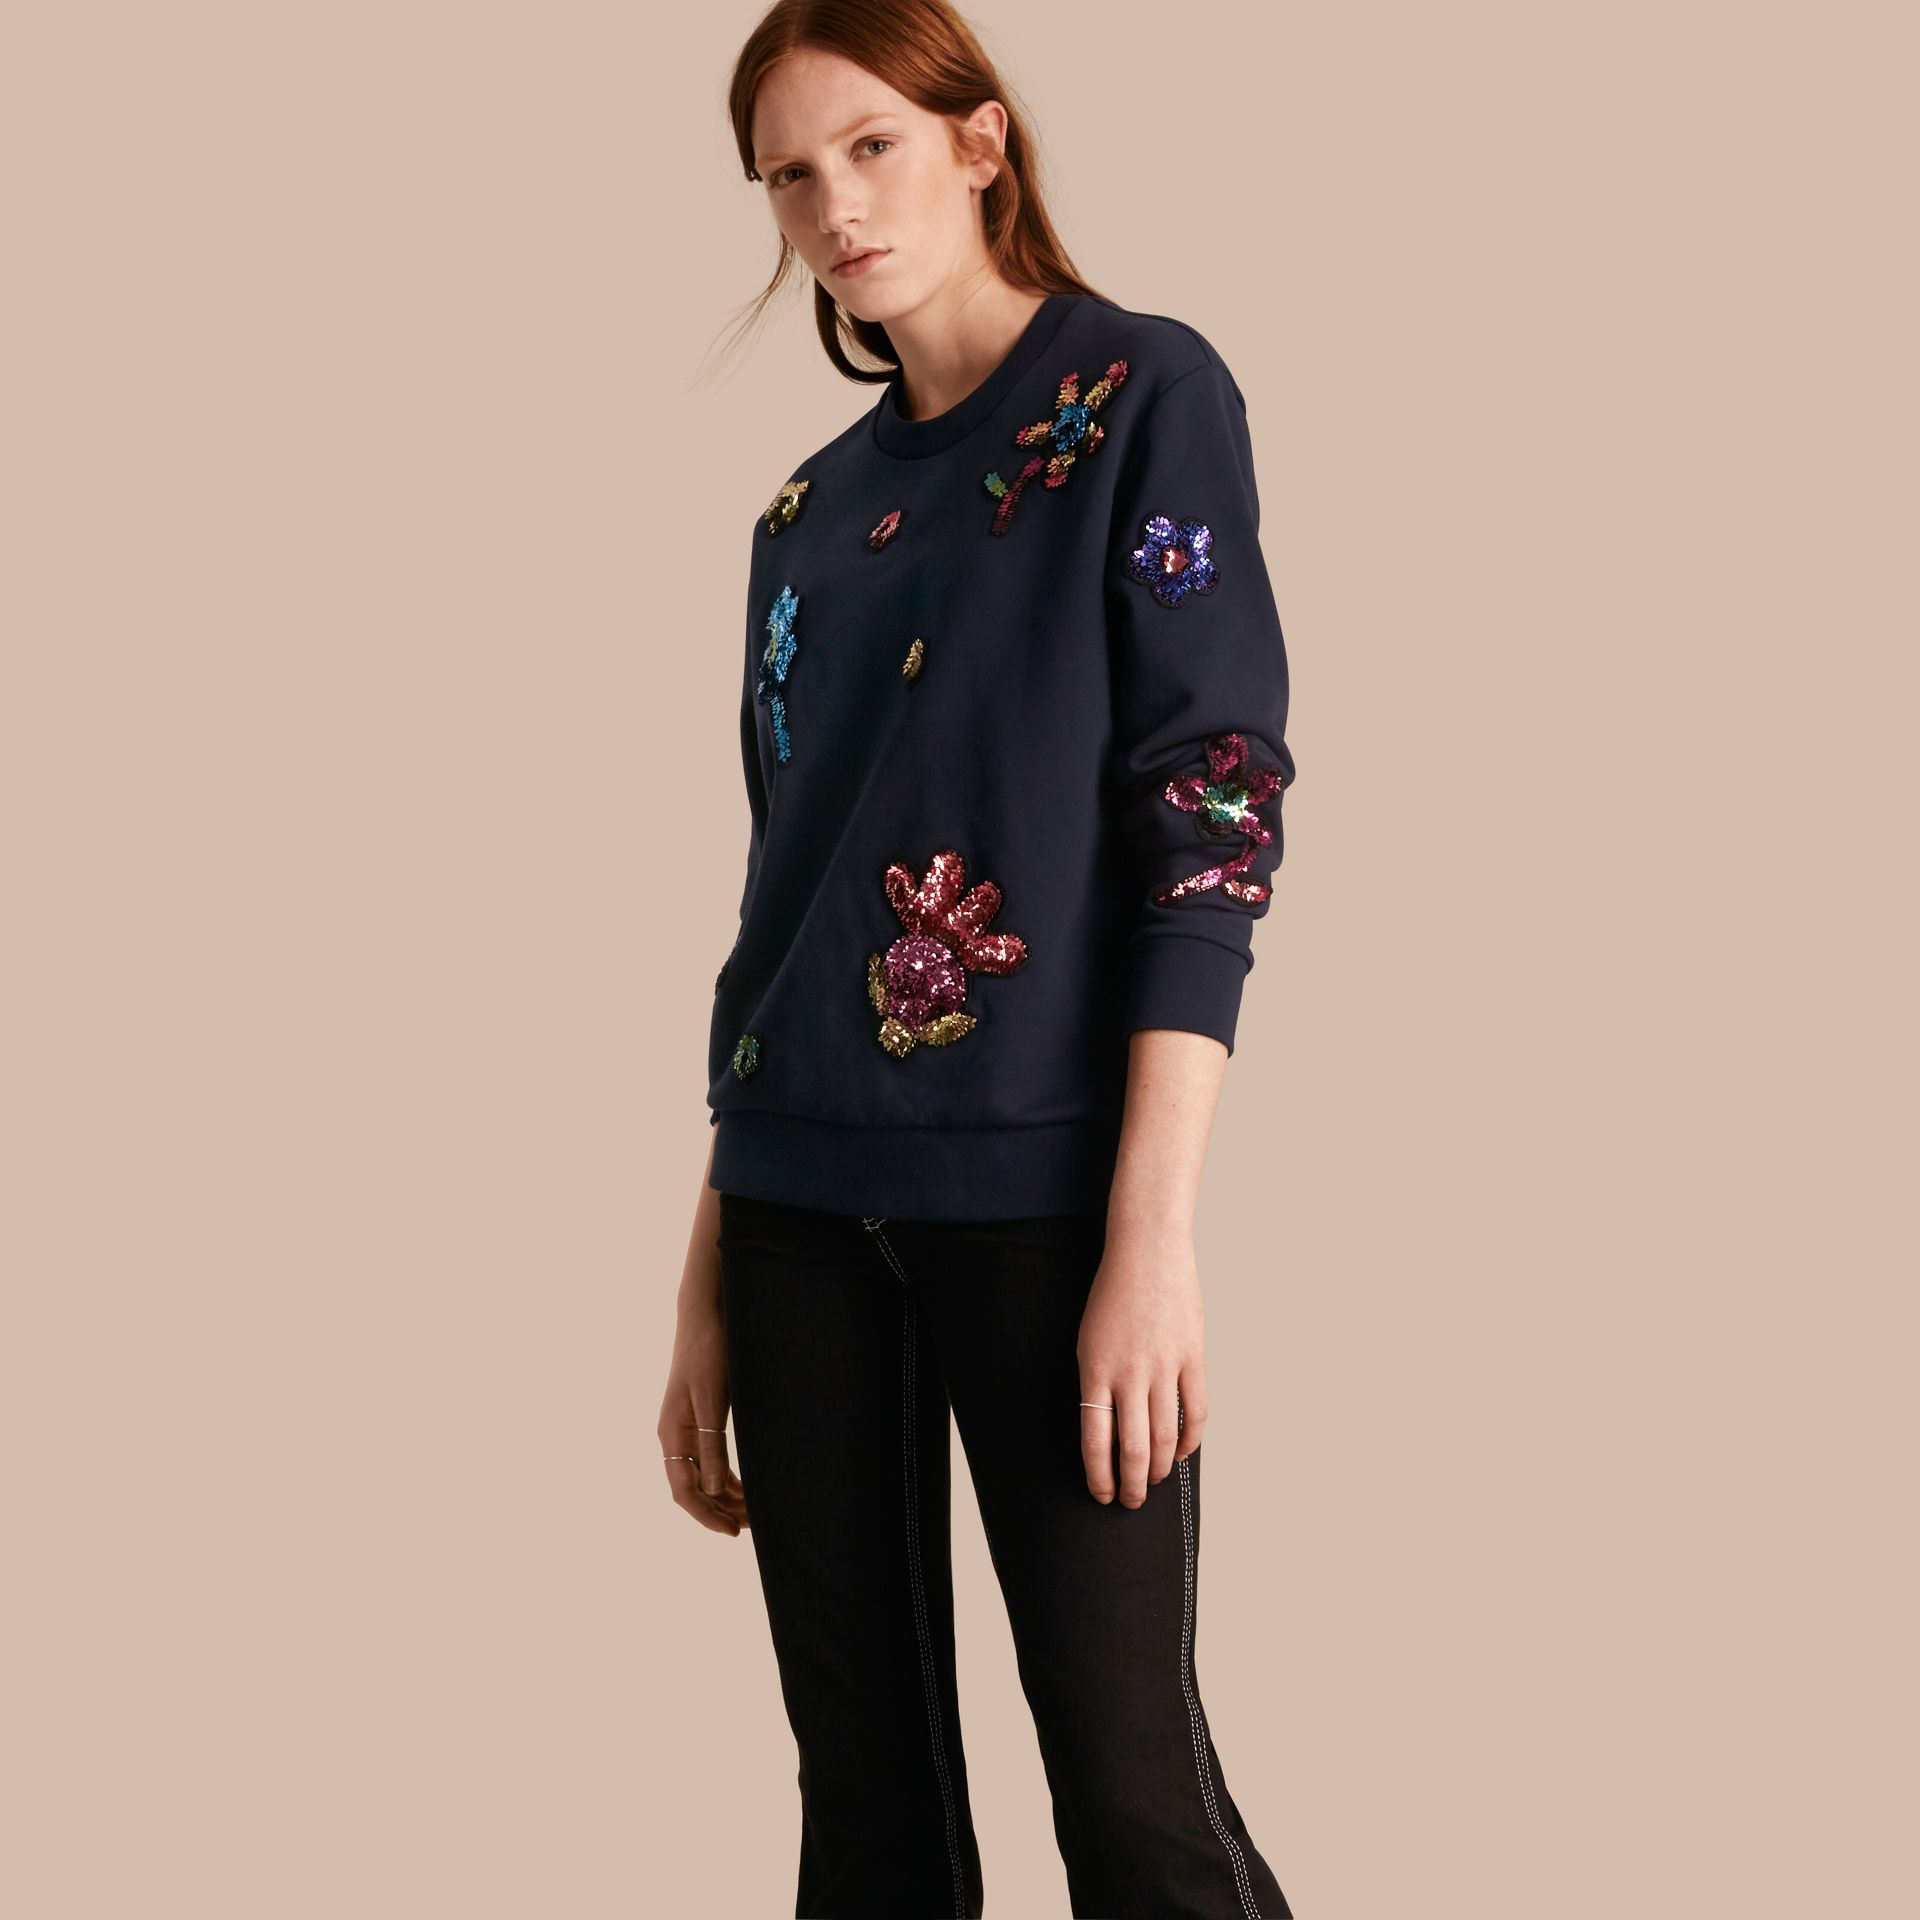 Navy Sequin Floral Appliqué Cotton Sweatshirt Navy - gallery image 1